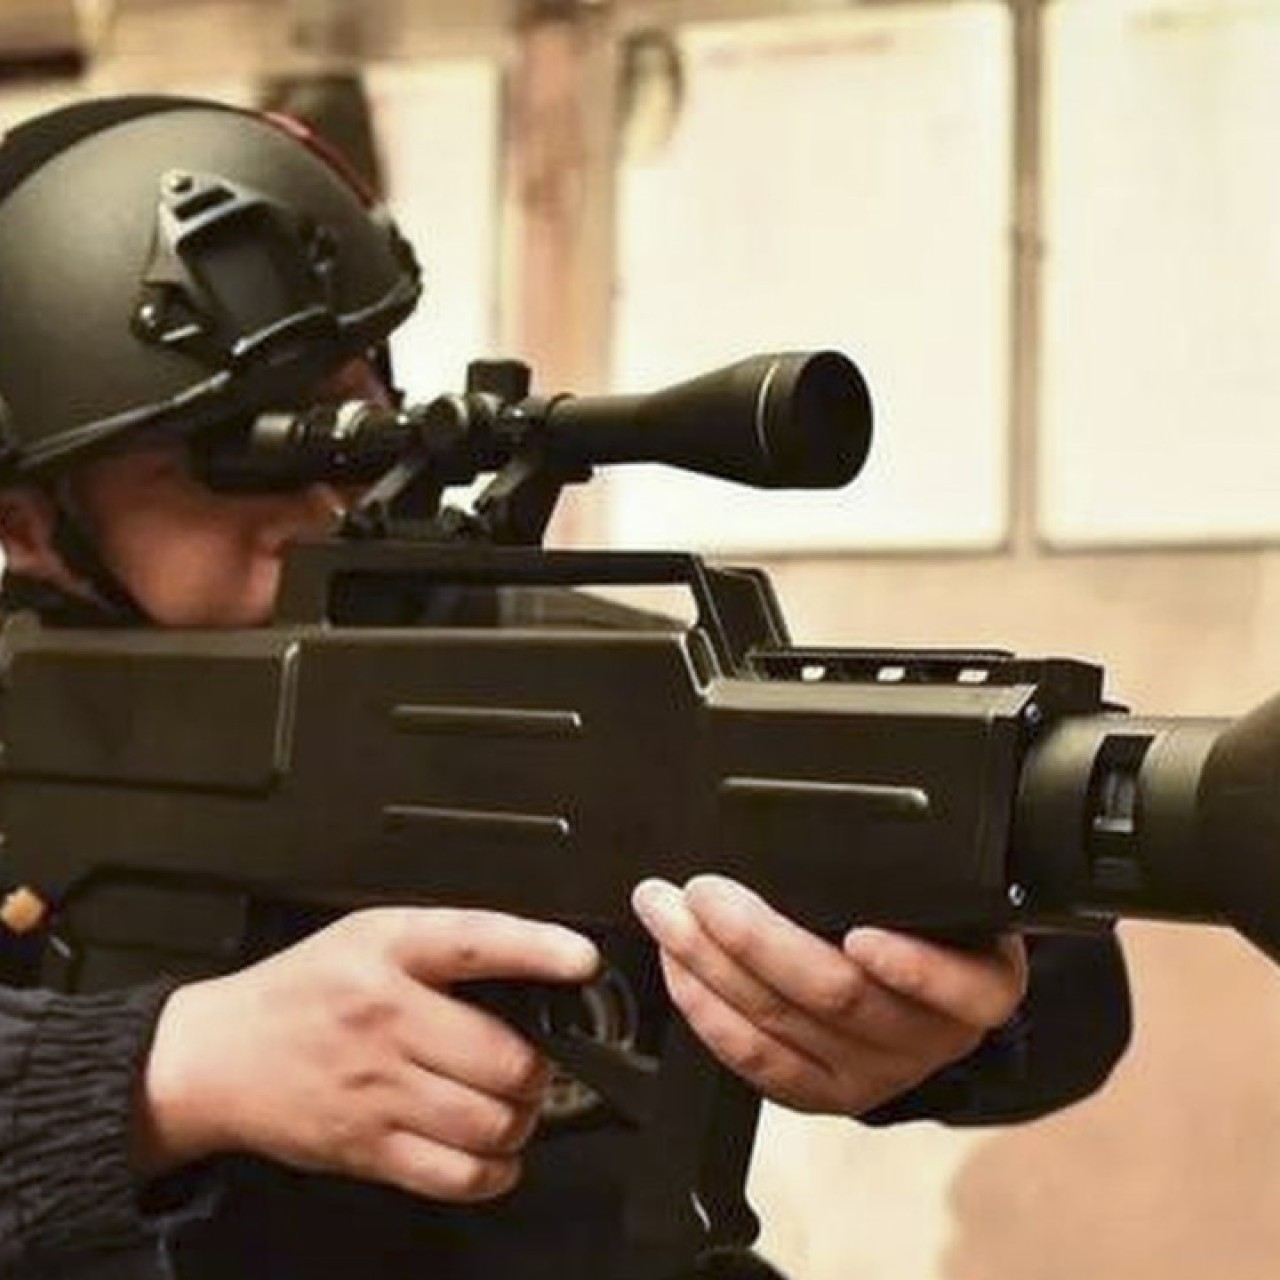 China Brings Star Wars To Life With Laser Ak 47 That Can